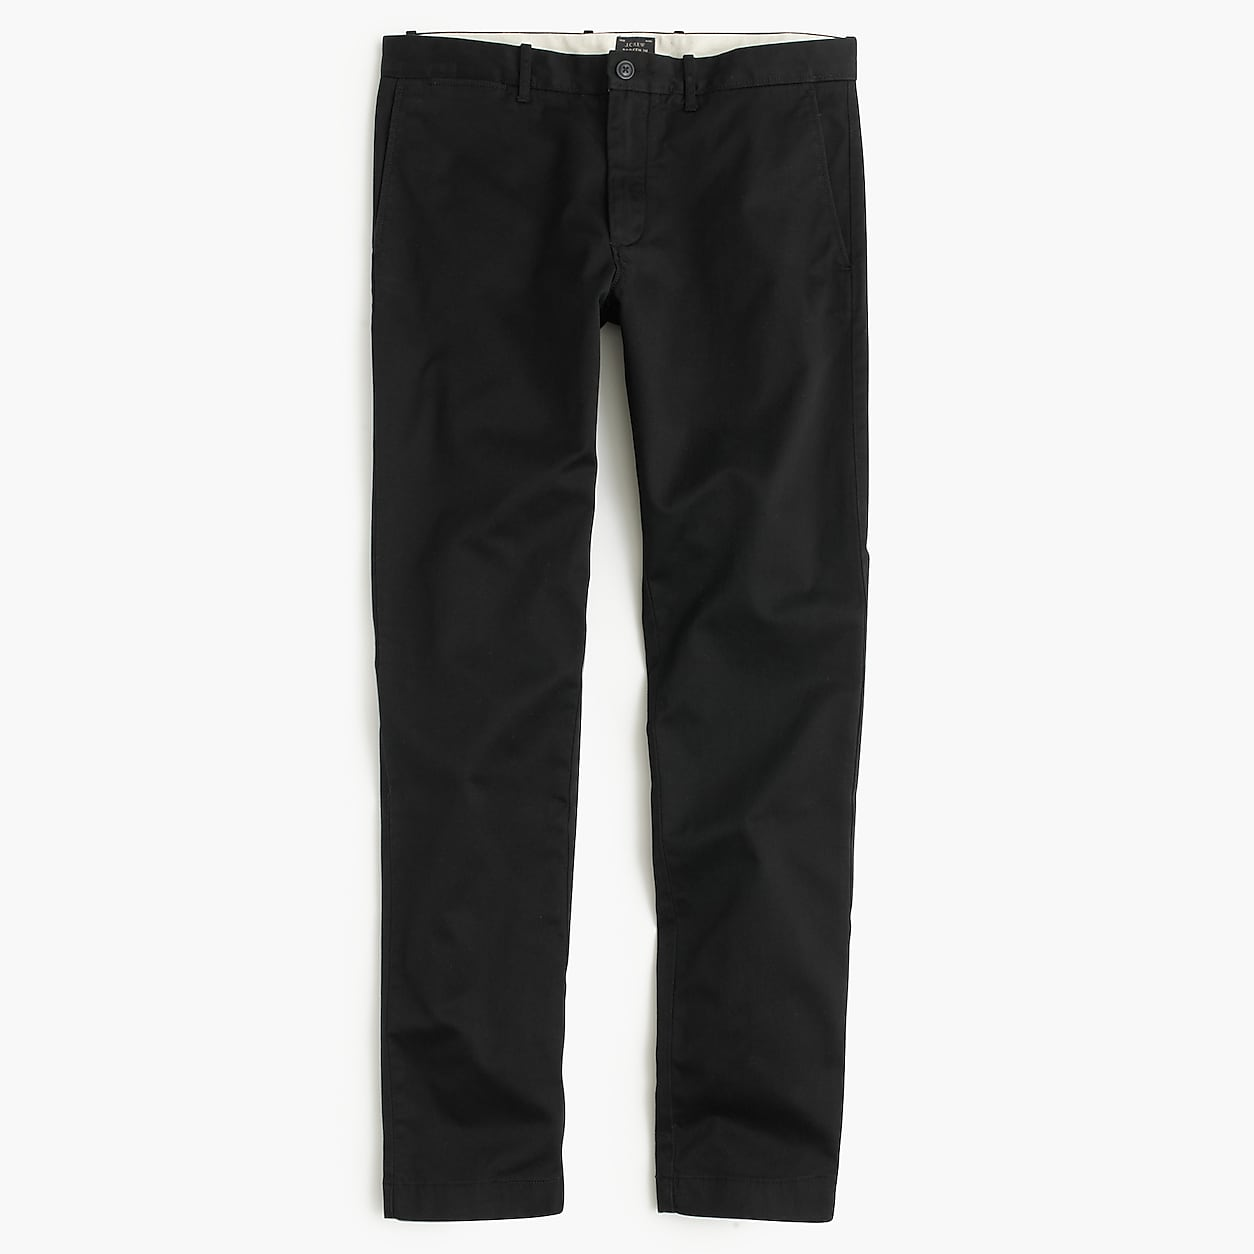 484 slimfit pant in stretch chino mens chino pants